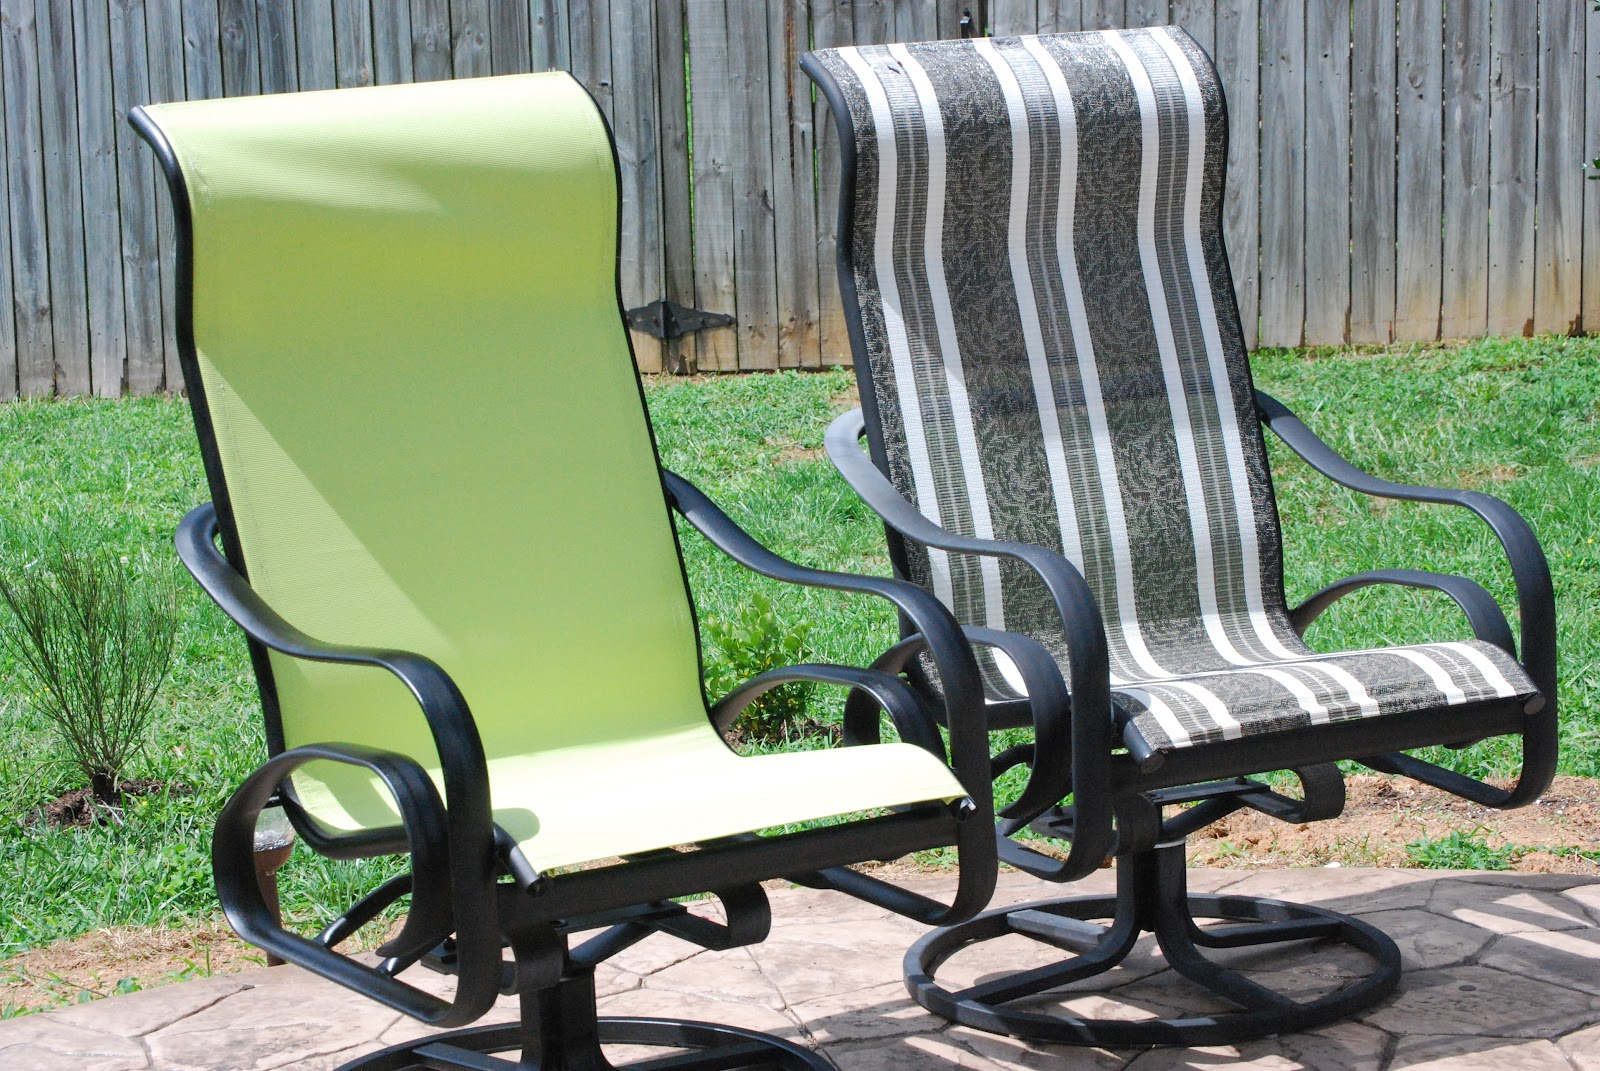 Recover Sling Back Chairs!: Recover Sling Back Chairs!!